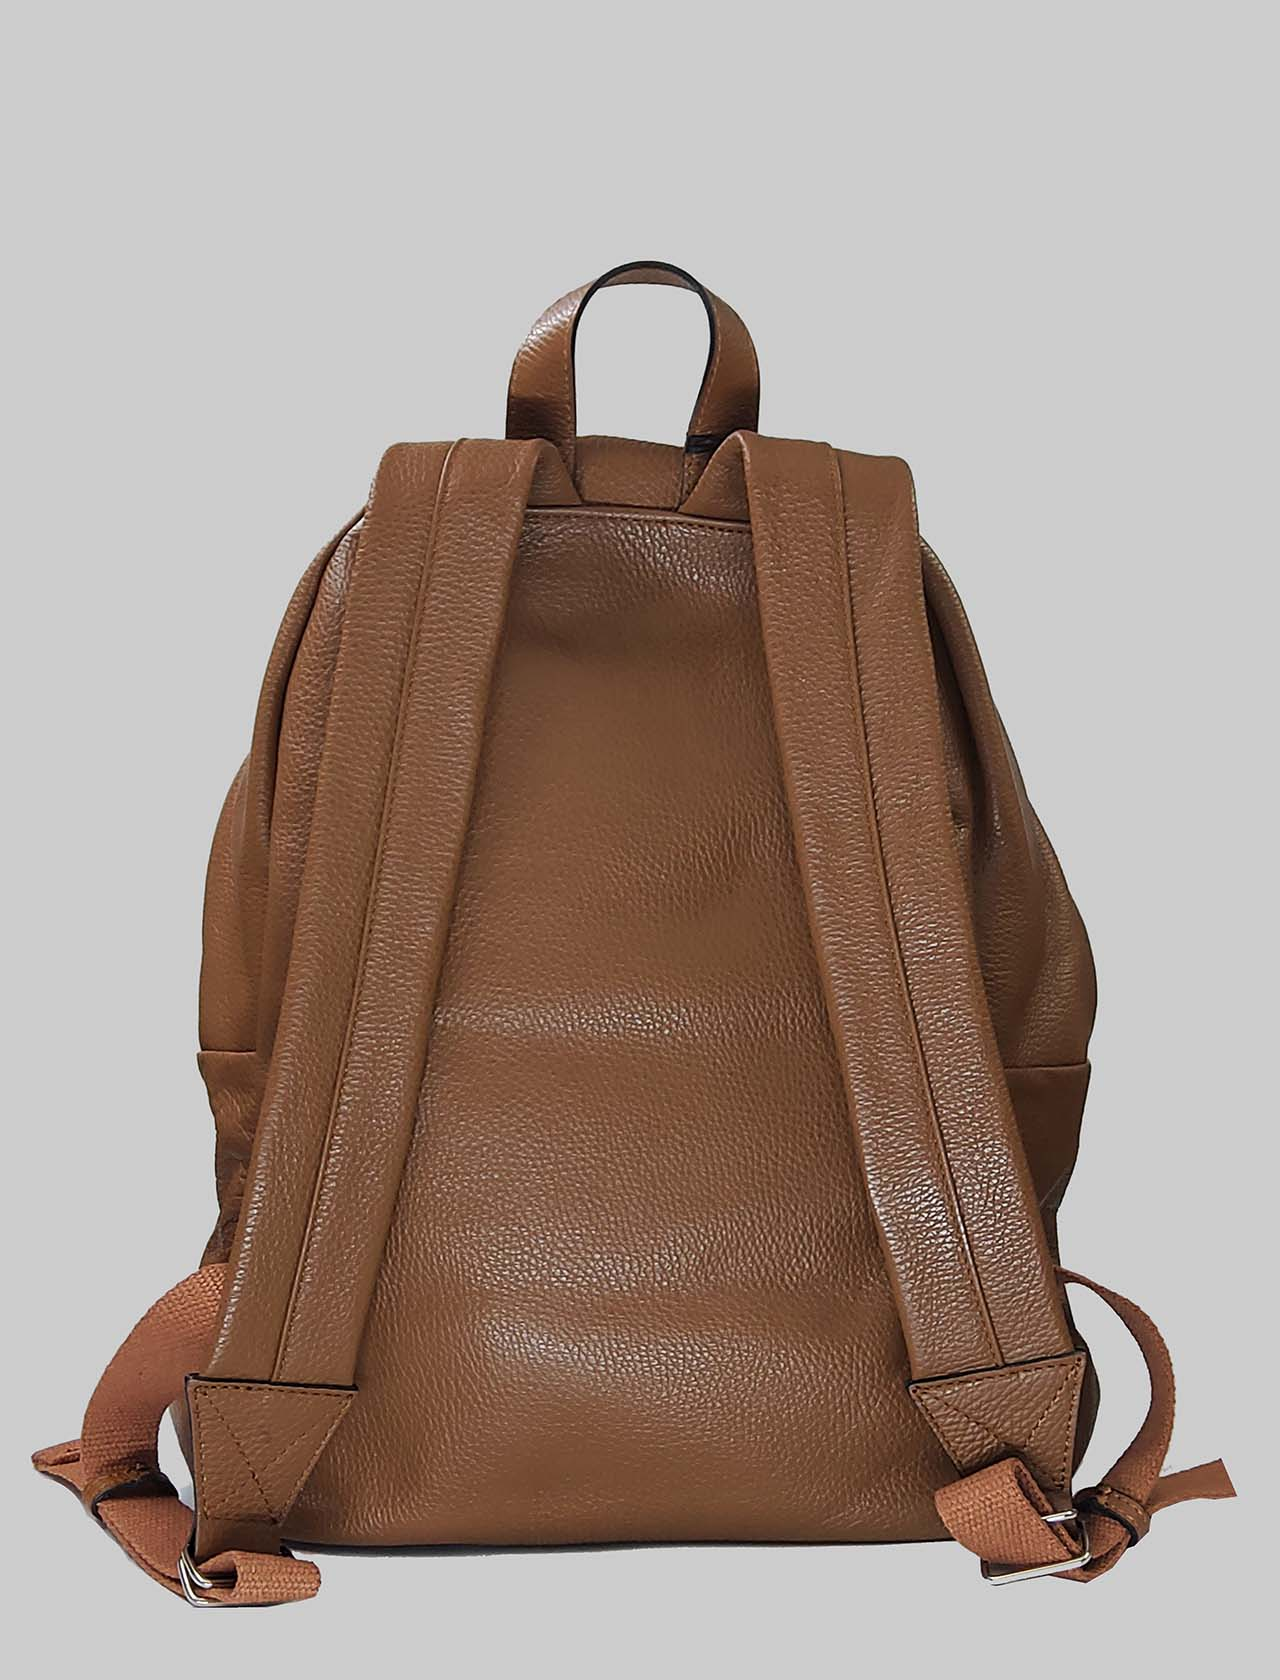 Men's Accessories Leather Backpack with Wide Leather Shoulder Straps Spatarella | Bags and backpacks | PEU0205014